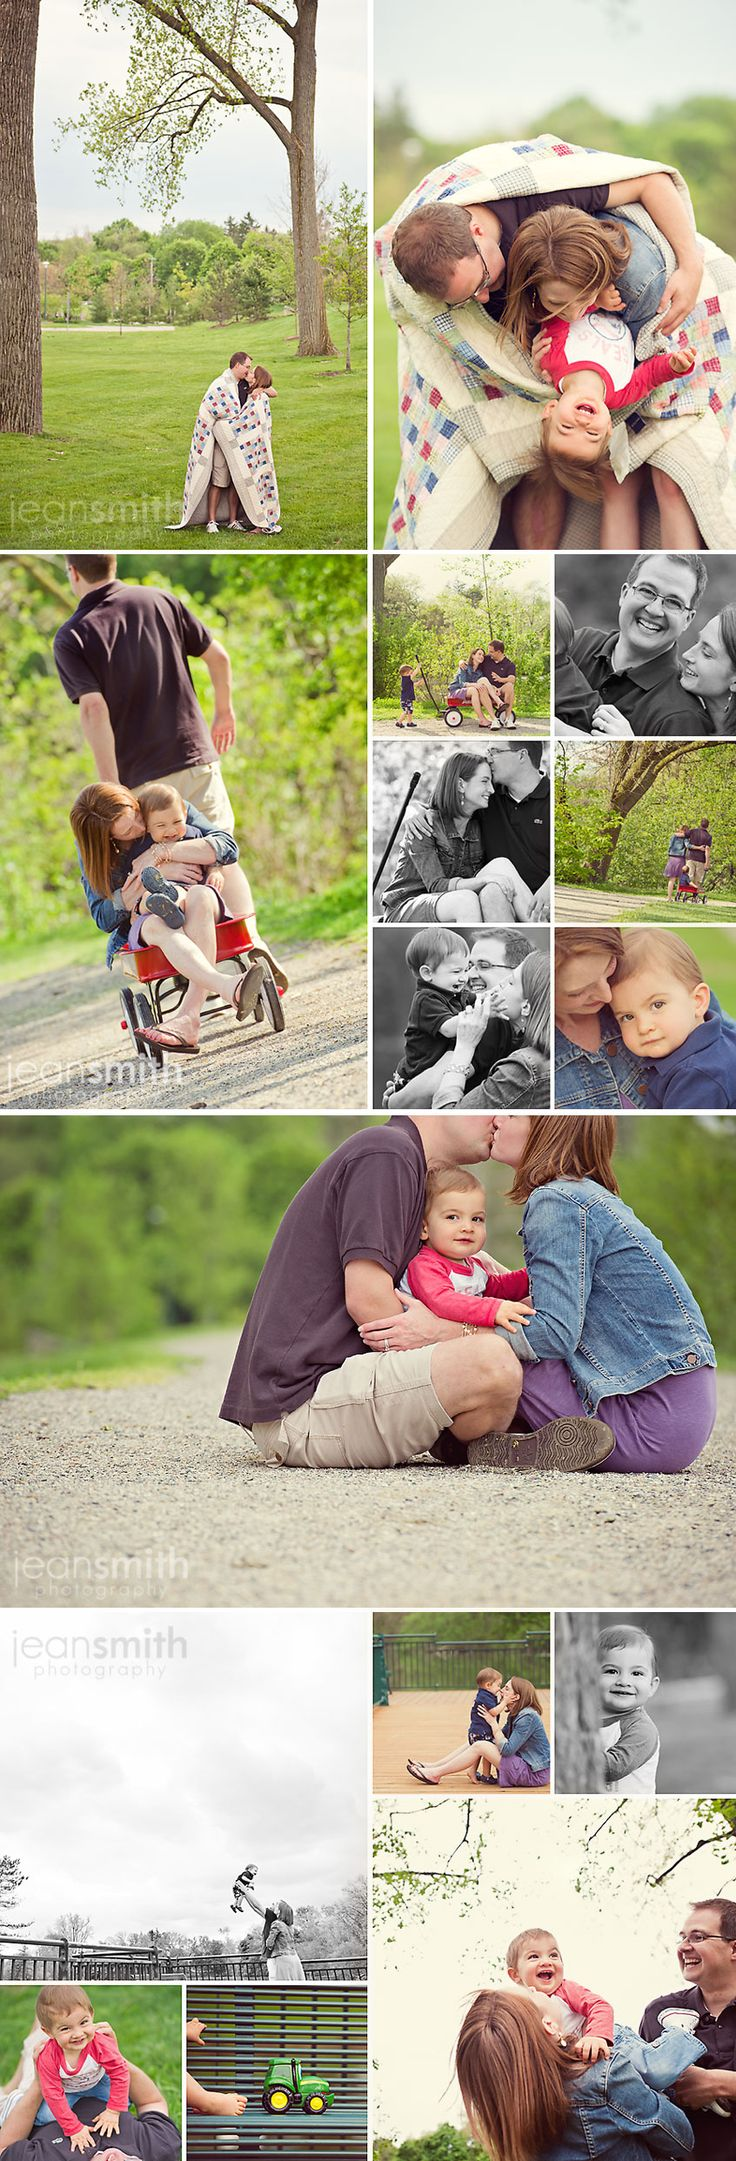 Sweet mixed series of family shots covering everyone from the couple to the family all together.